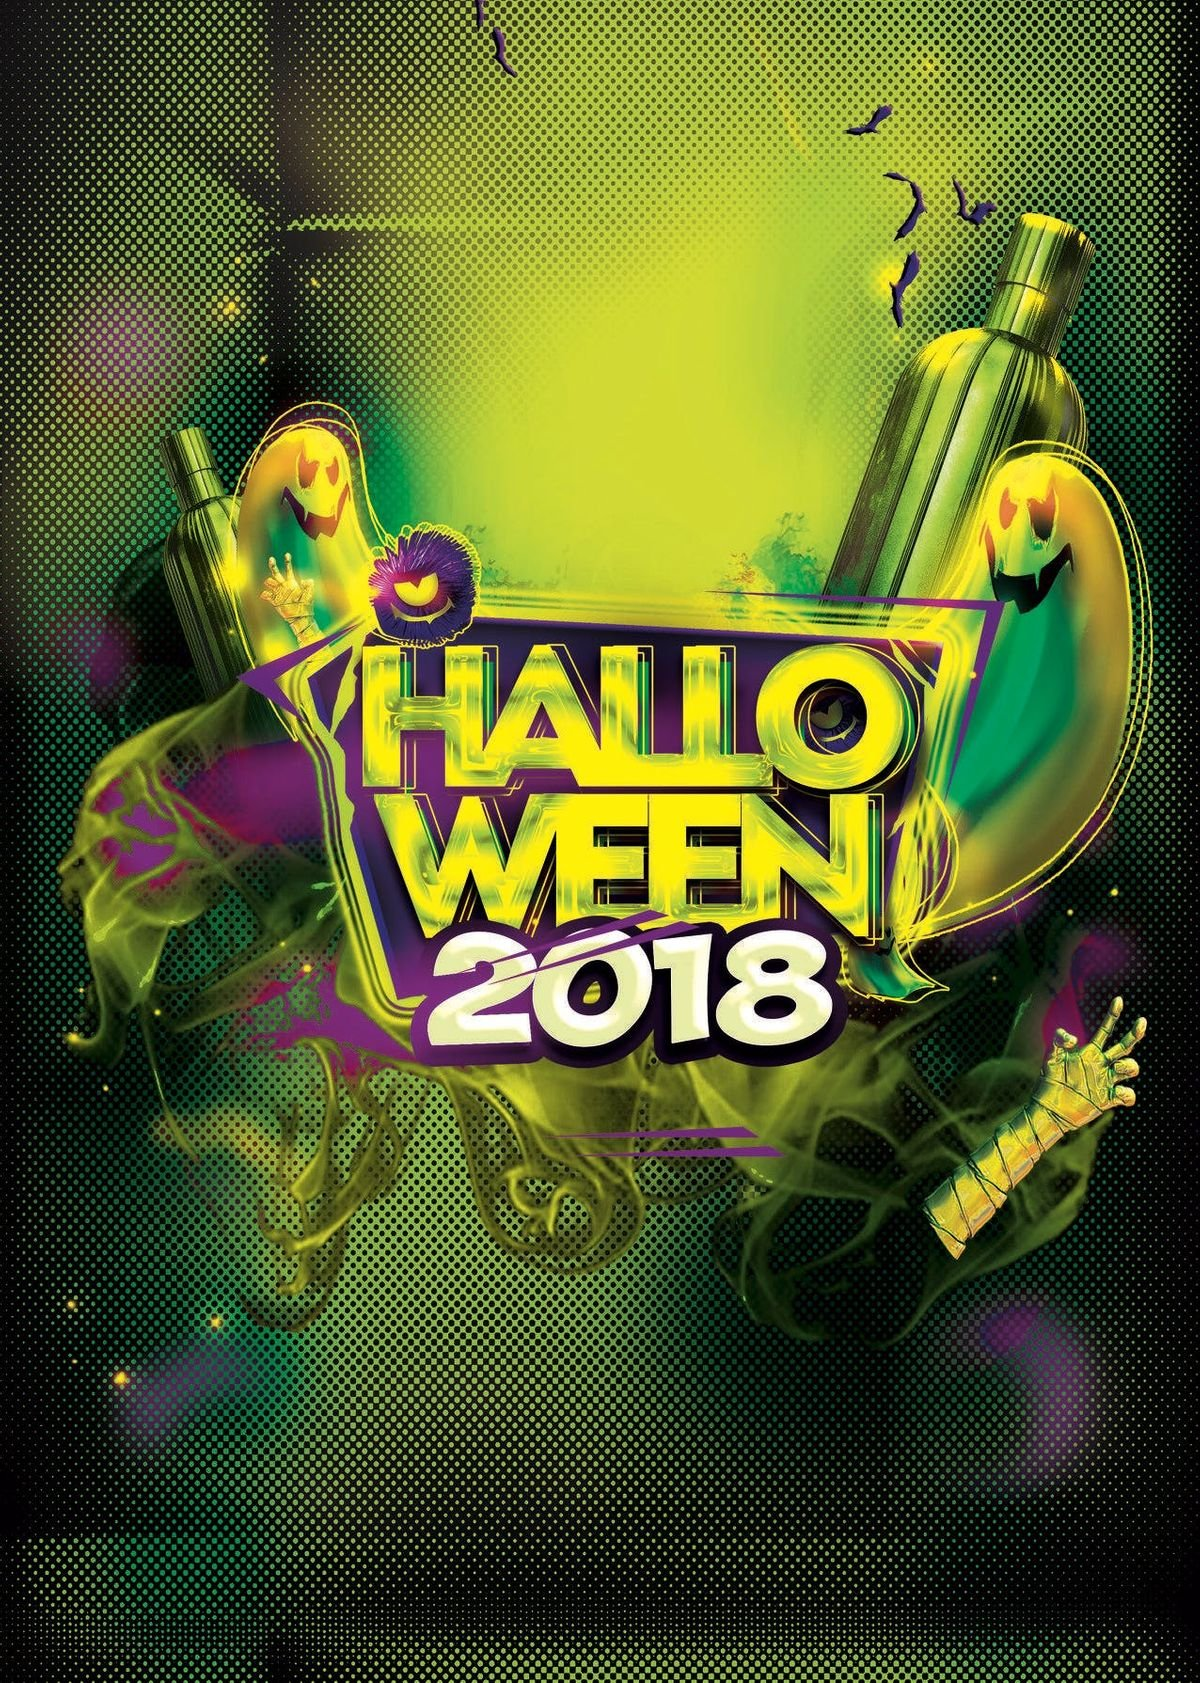 OTTAWA HALLOWEEN PARTY 2018  THE BOURBON ROOM  OFFICIAL HALLOWEEN MEGA PARTY